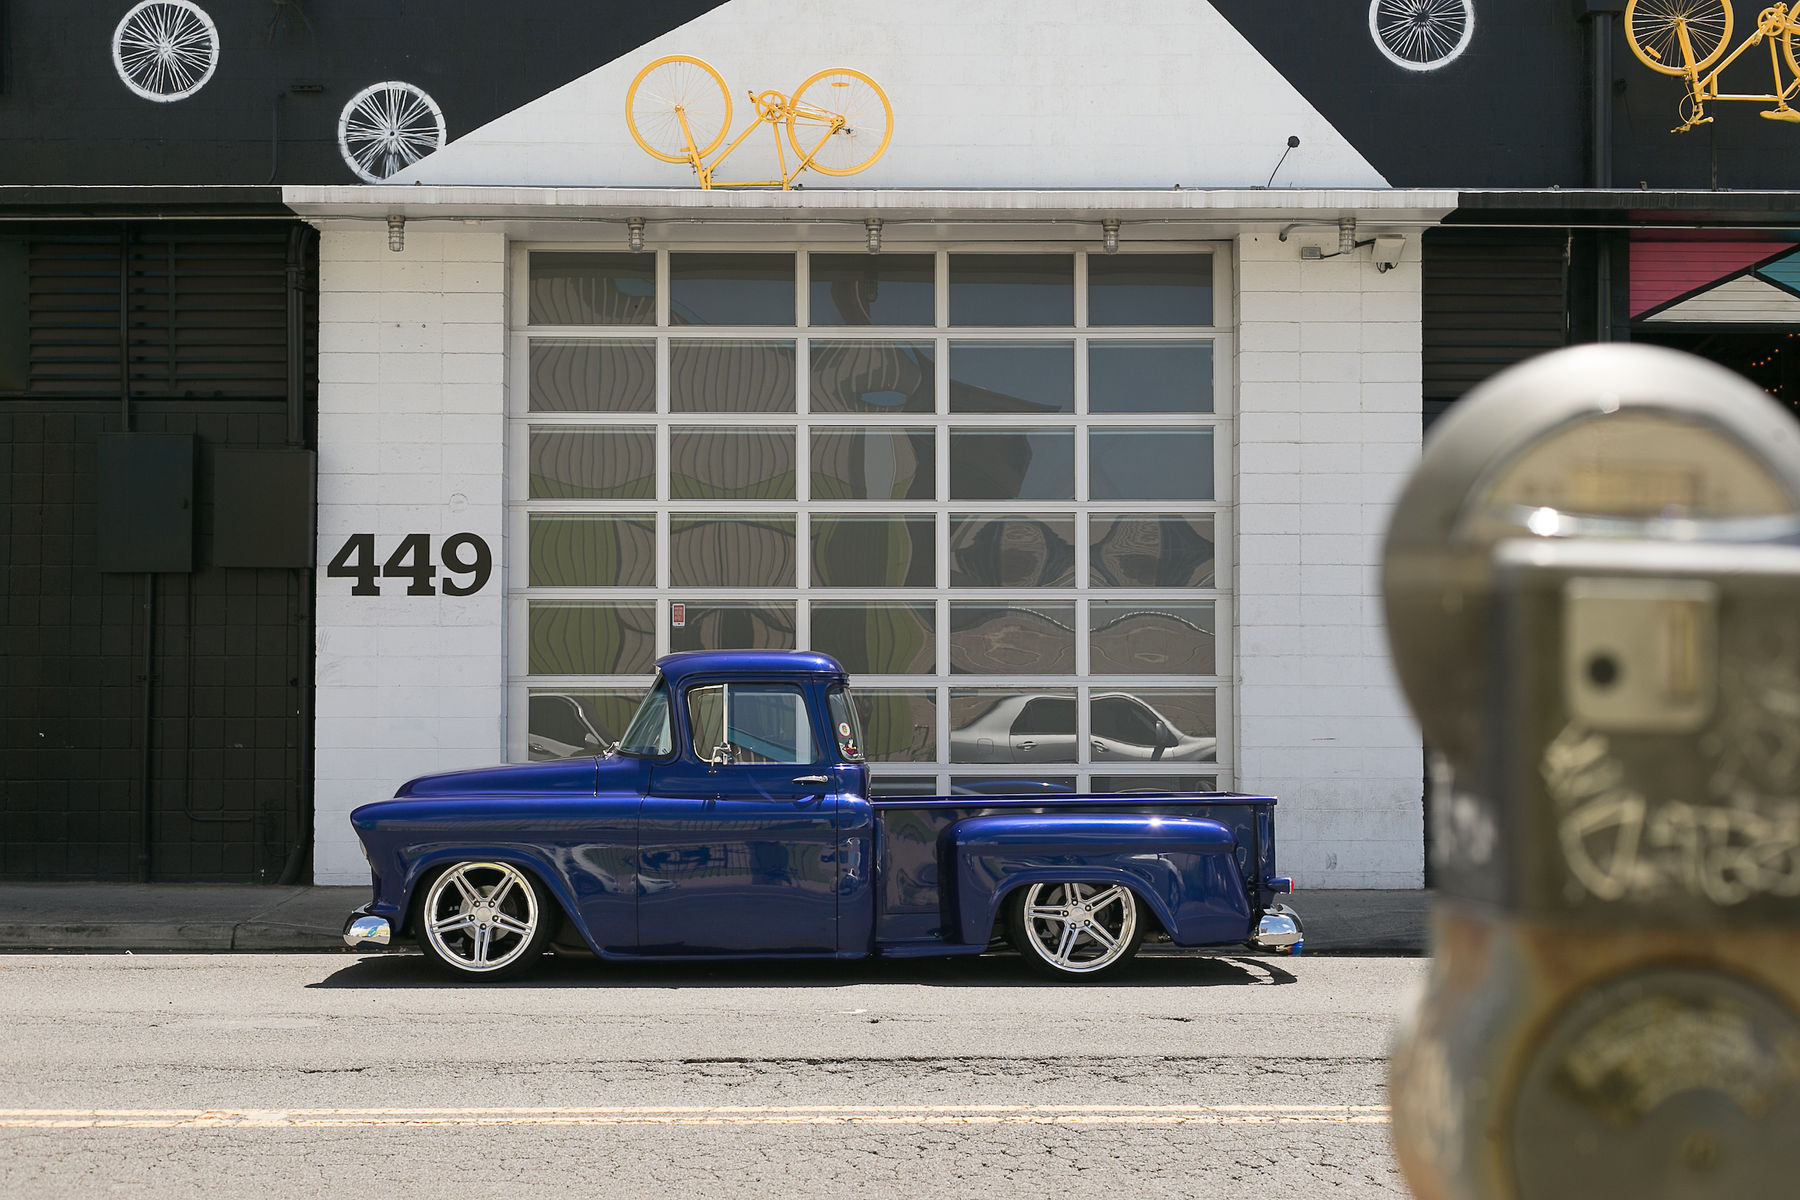 1957 Chevrolet C-10 | Esmond Takeshita's '57 Chevy C-10 Truck on Forgeline SC3C Concave Wheels